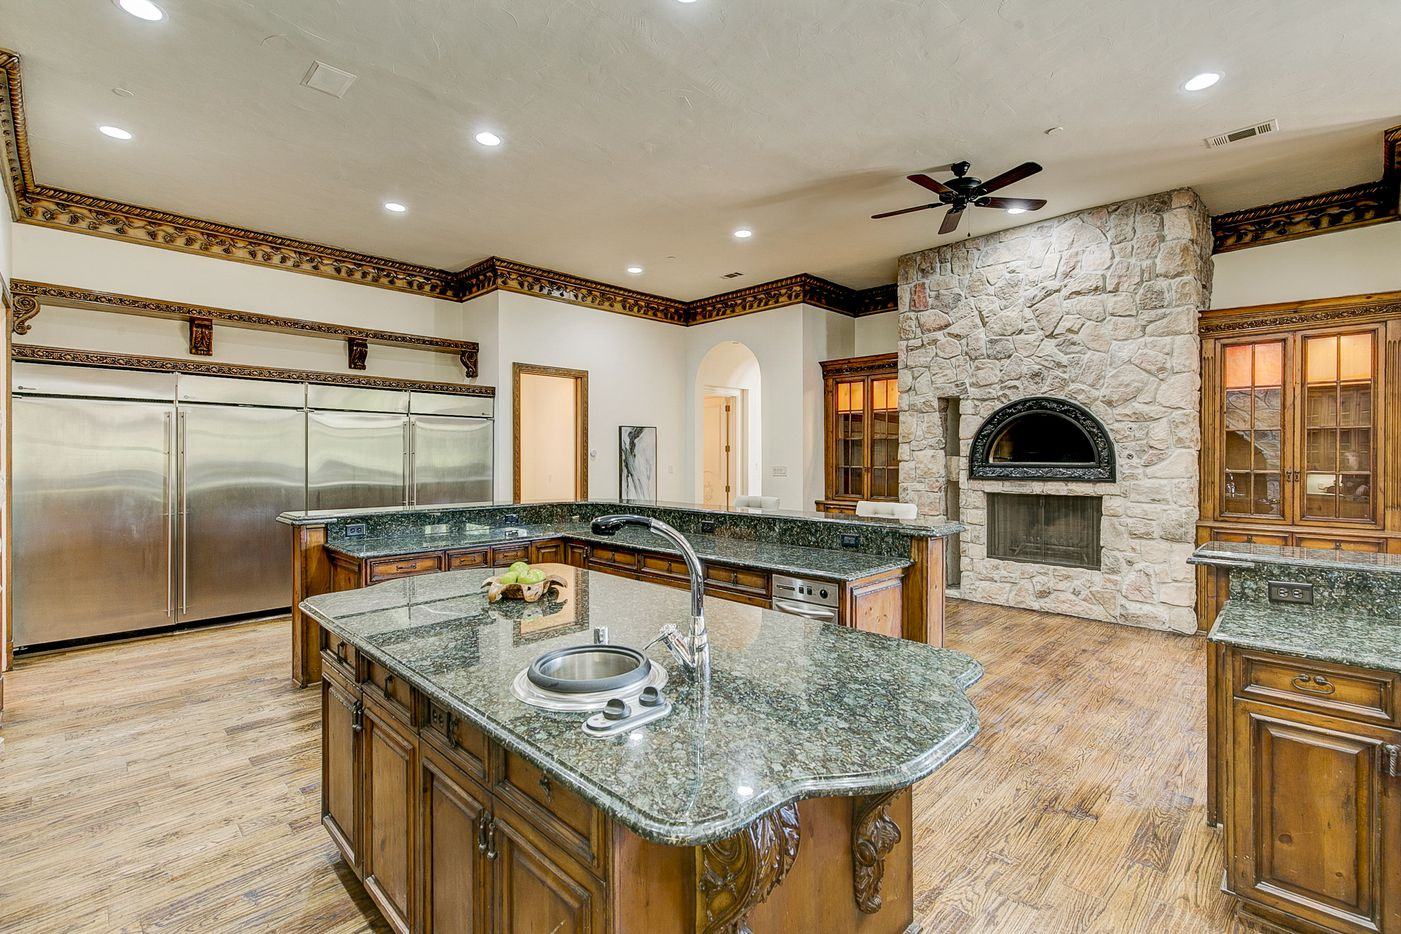 Kitchen, with pizza oven, at 2000 Willow Bend Drive. (Norman and Young)